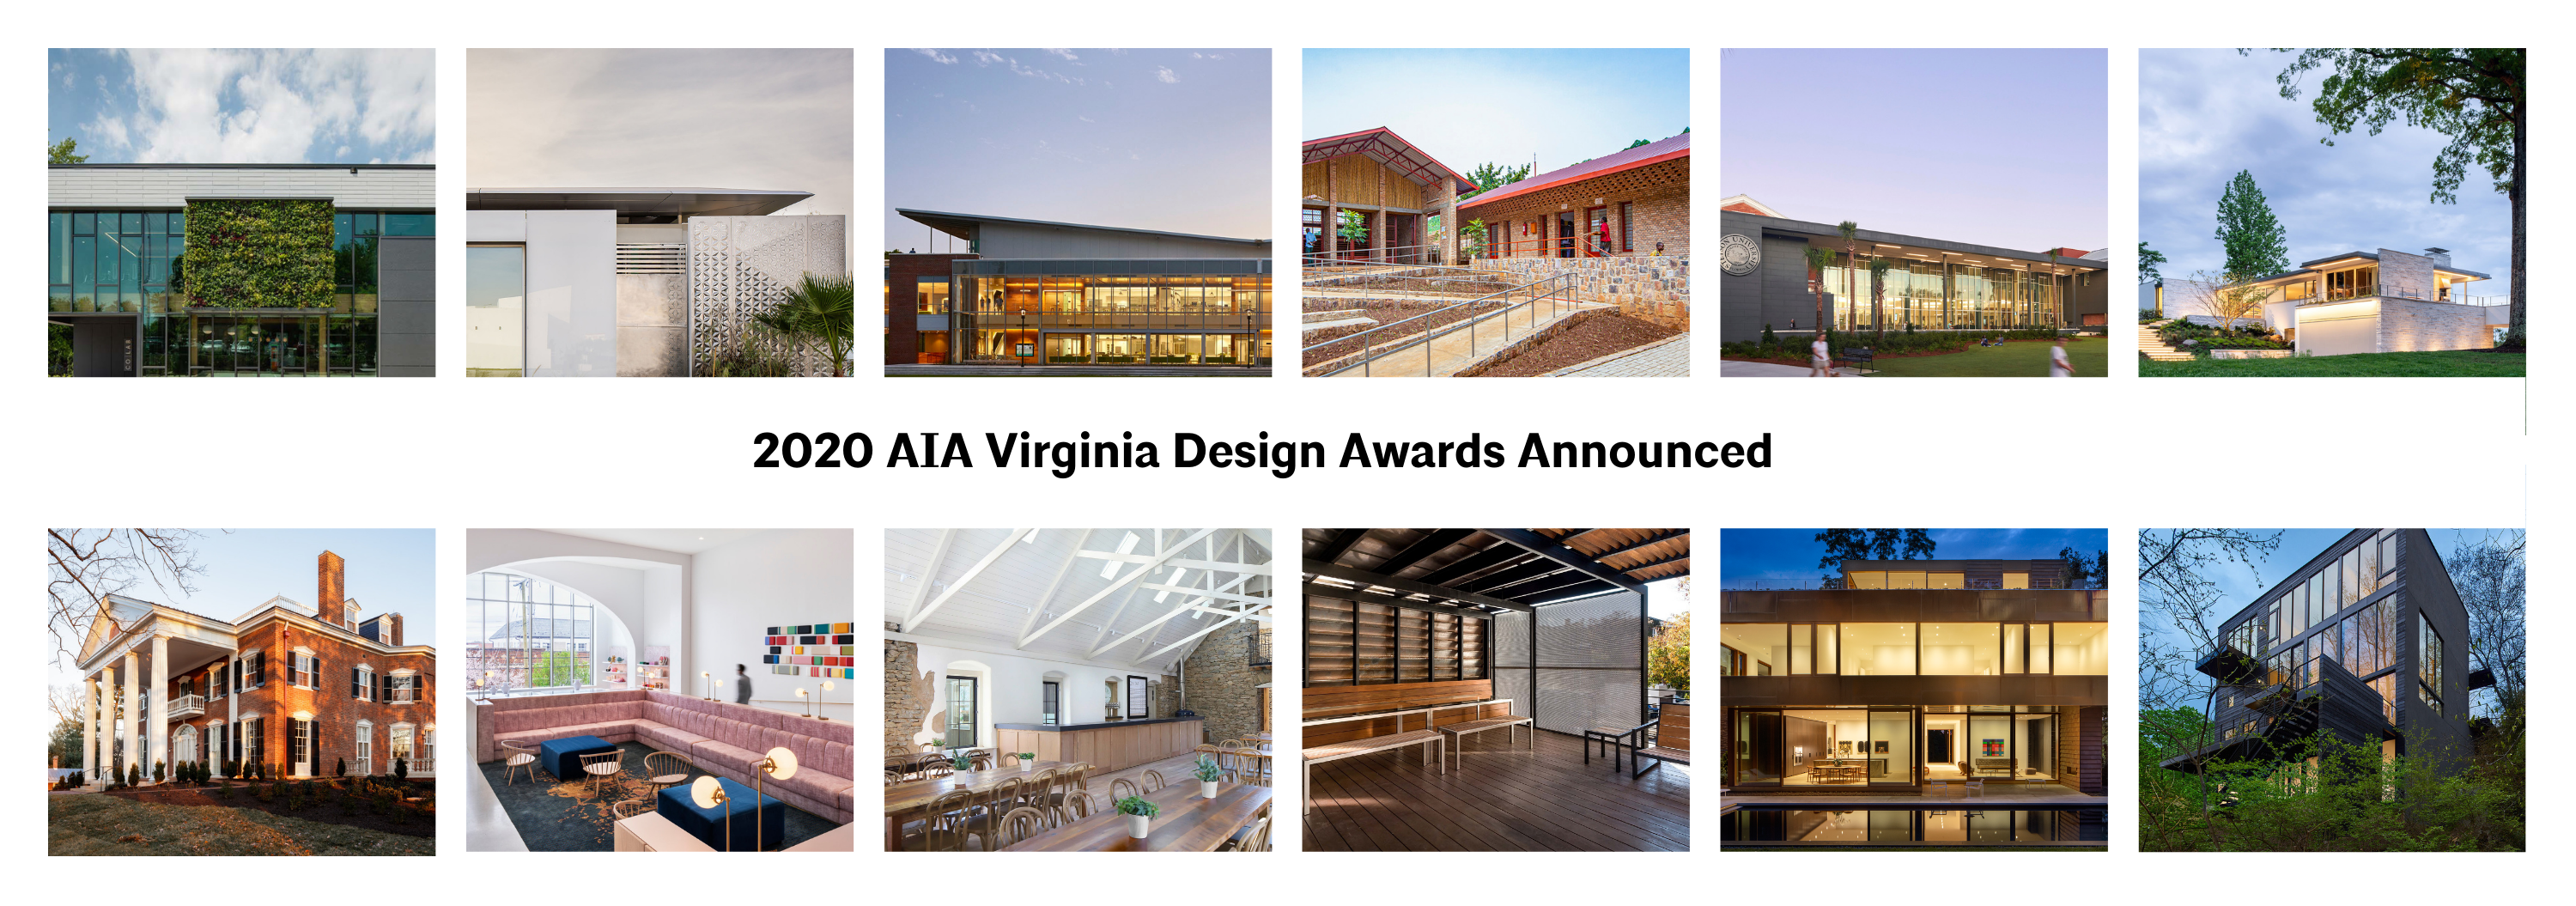 2020 Design Awards announced graphic